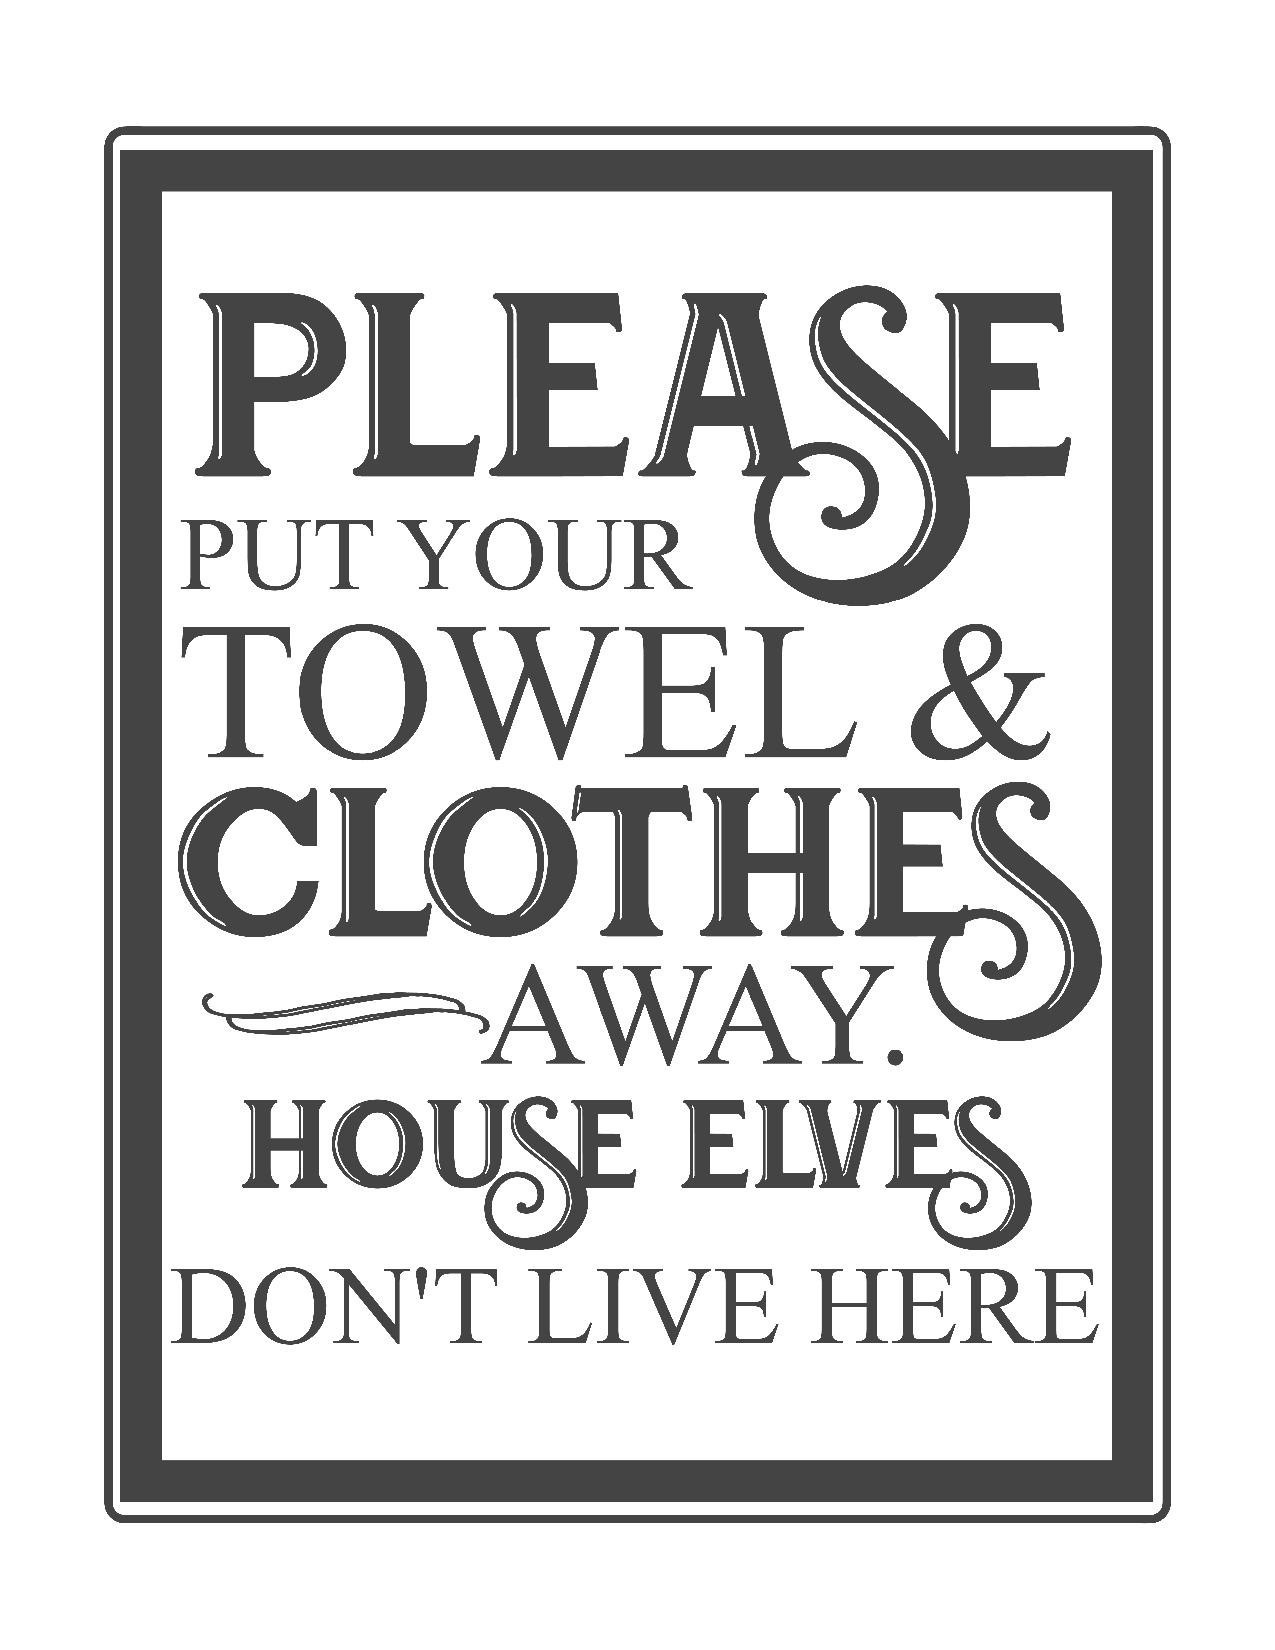 Printable Bathroom Signs For Kids Sayings Kids Bathroom Signs Kids - Free Printable Bathroom Signs